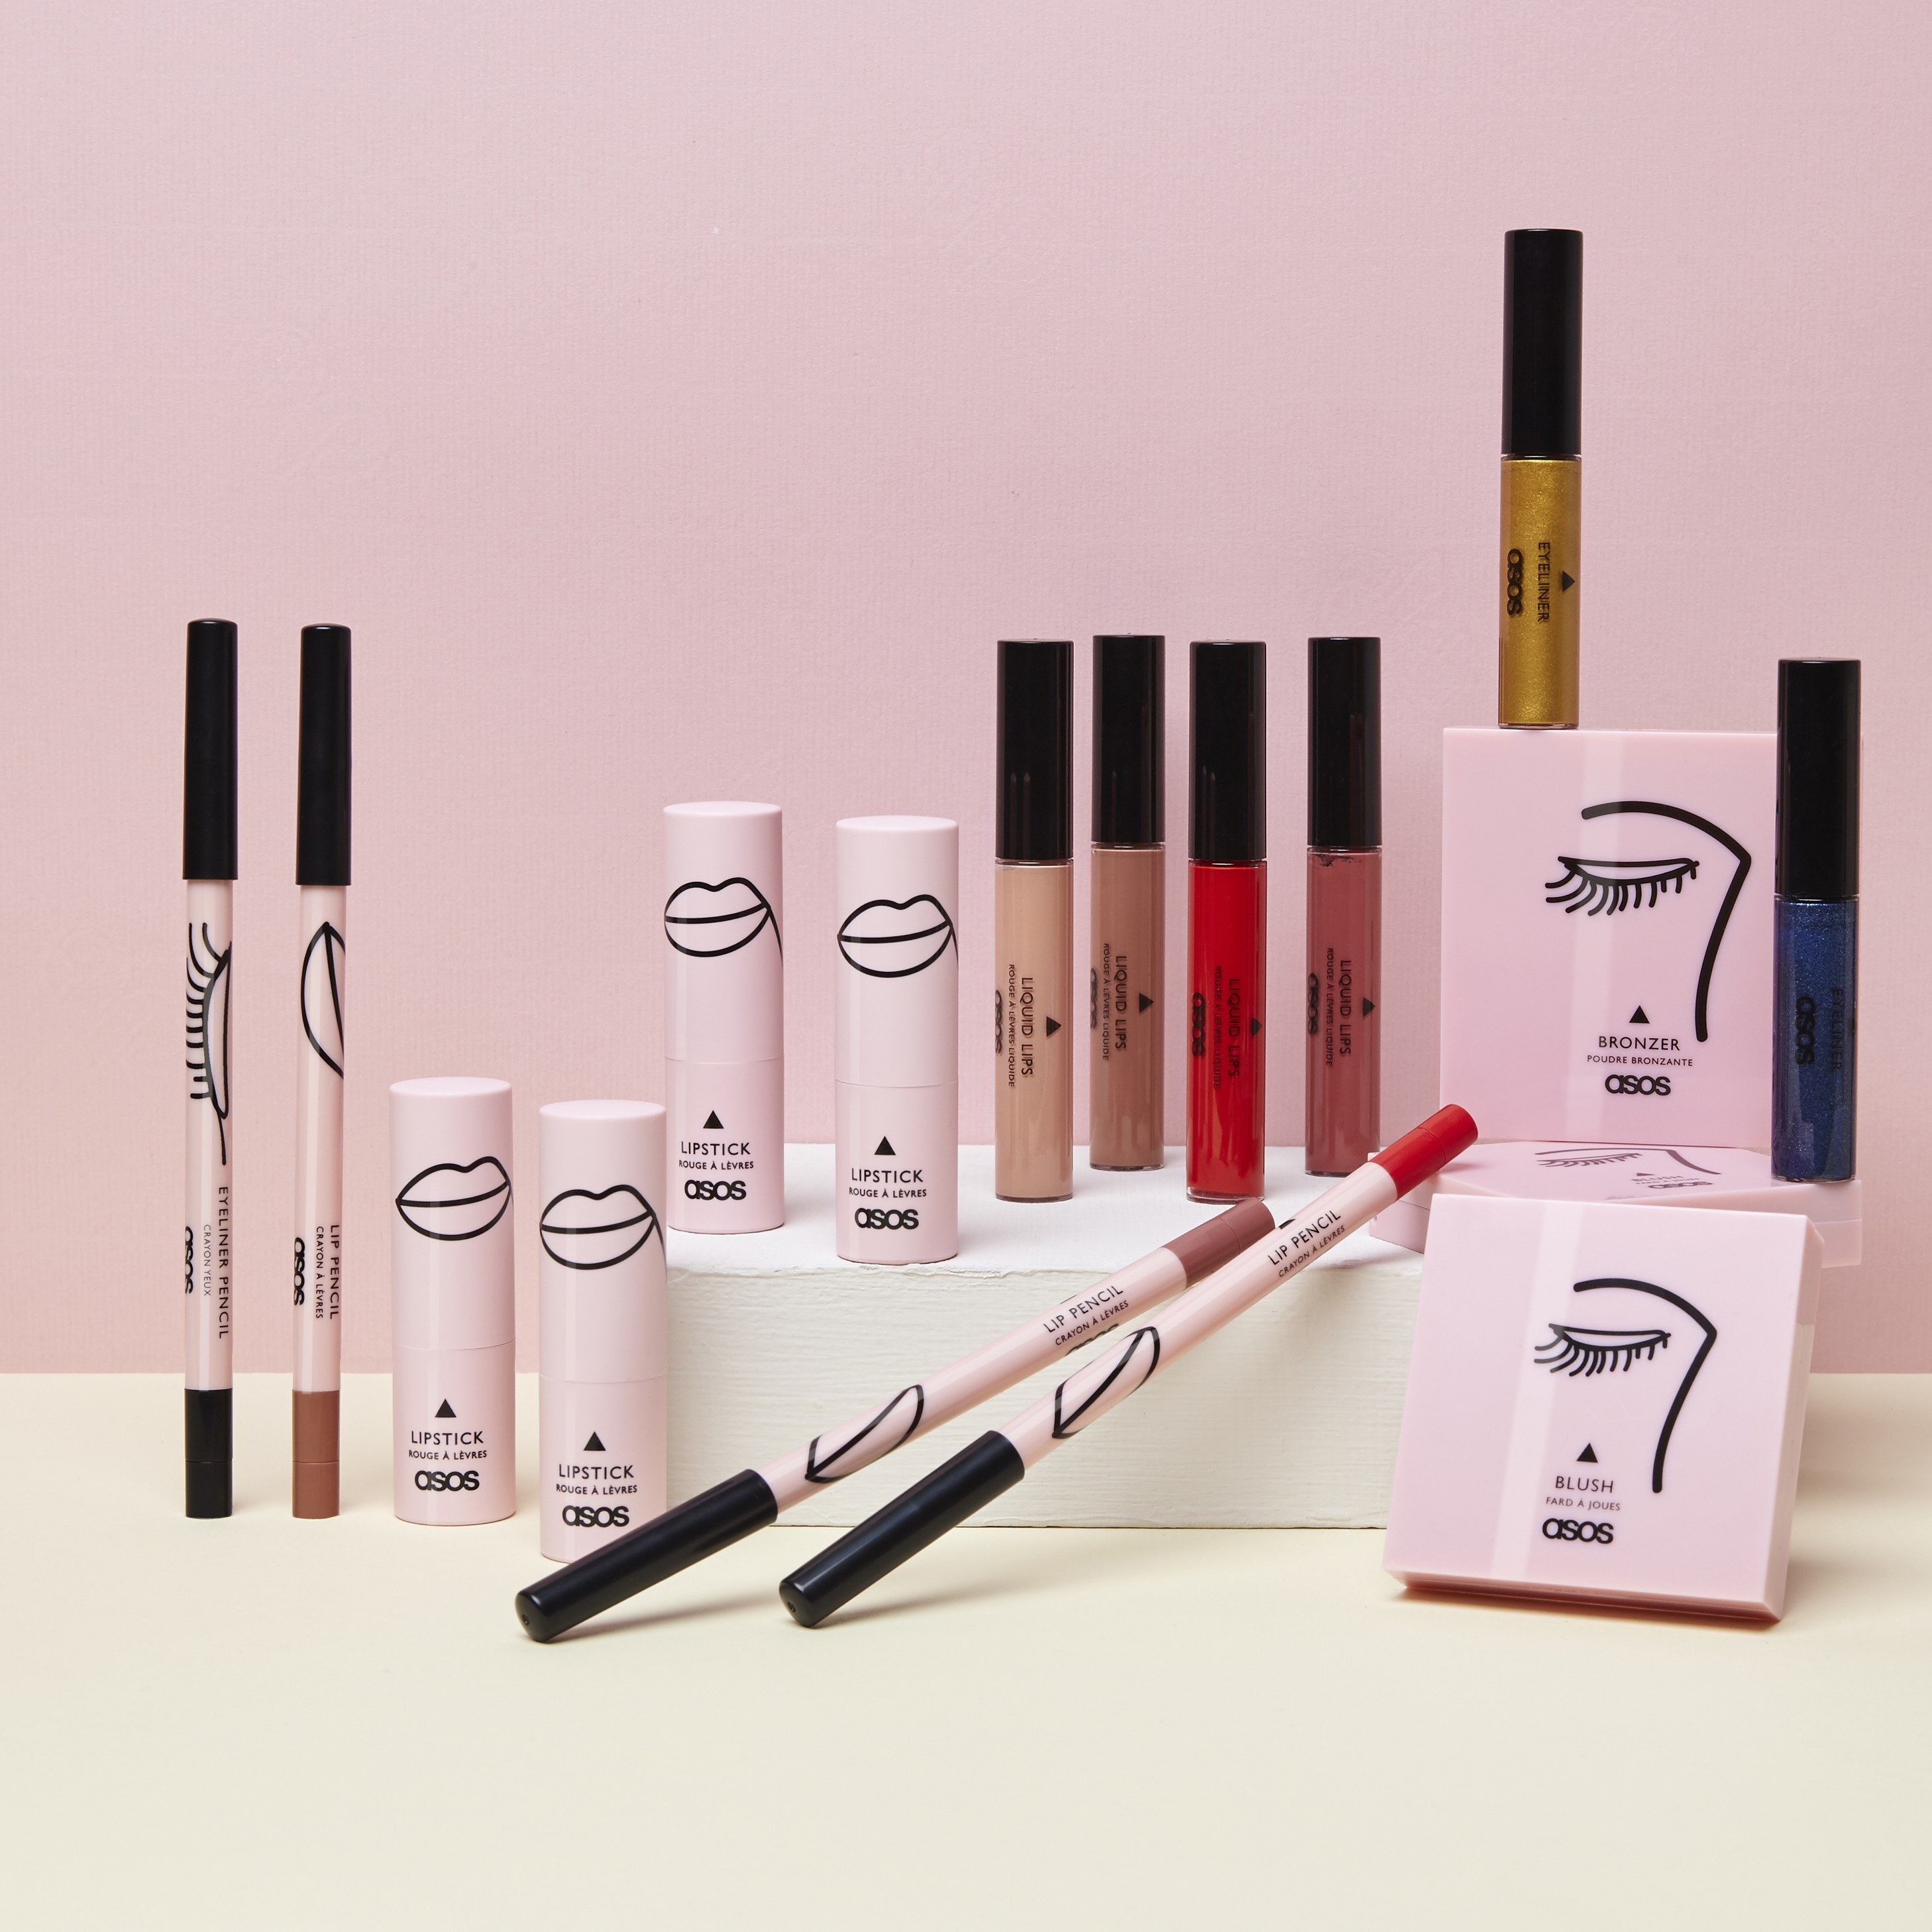 ASOS are releasing their own beauty line and it's as inclusive as it is pretty